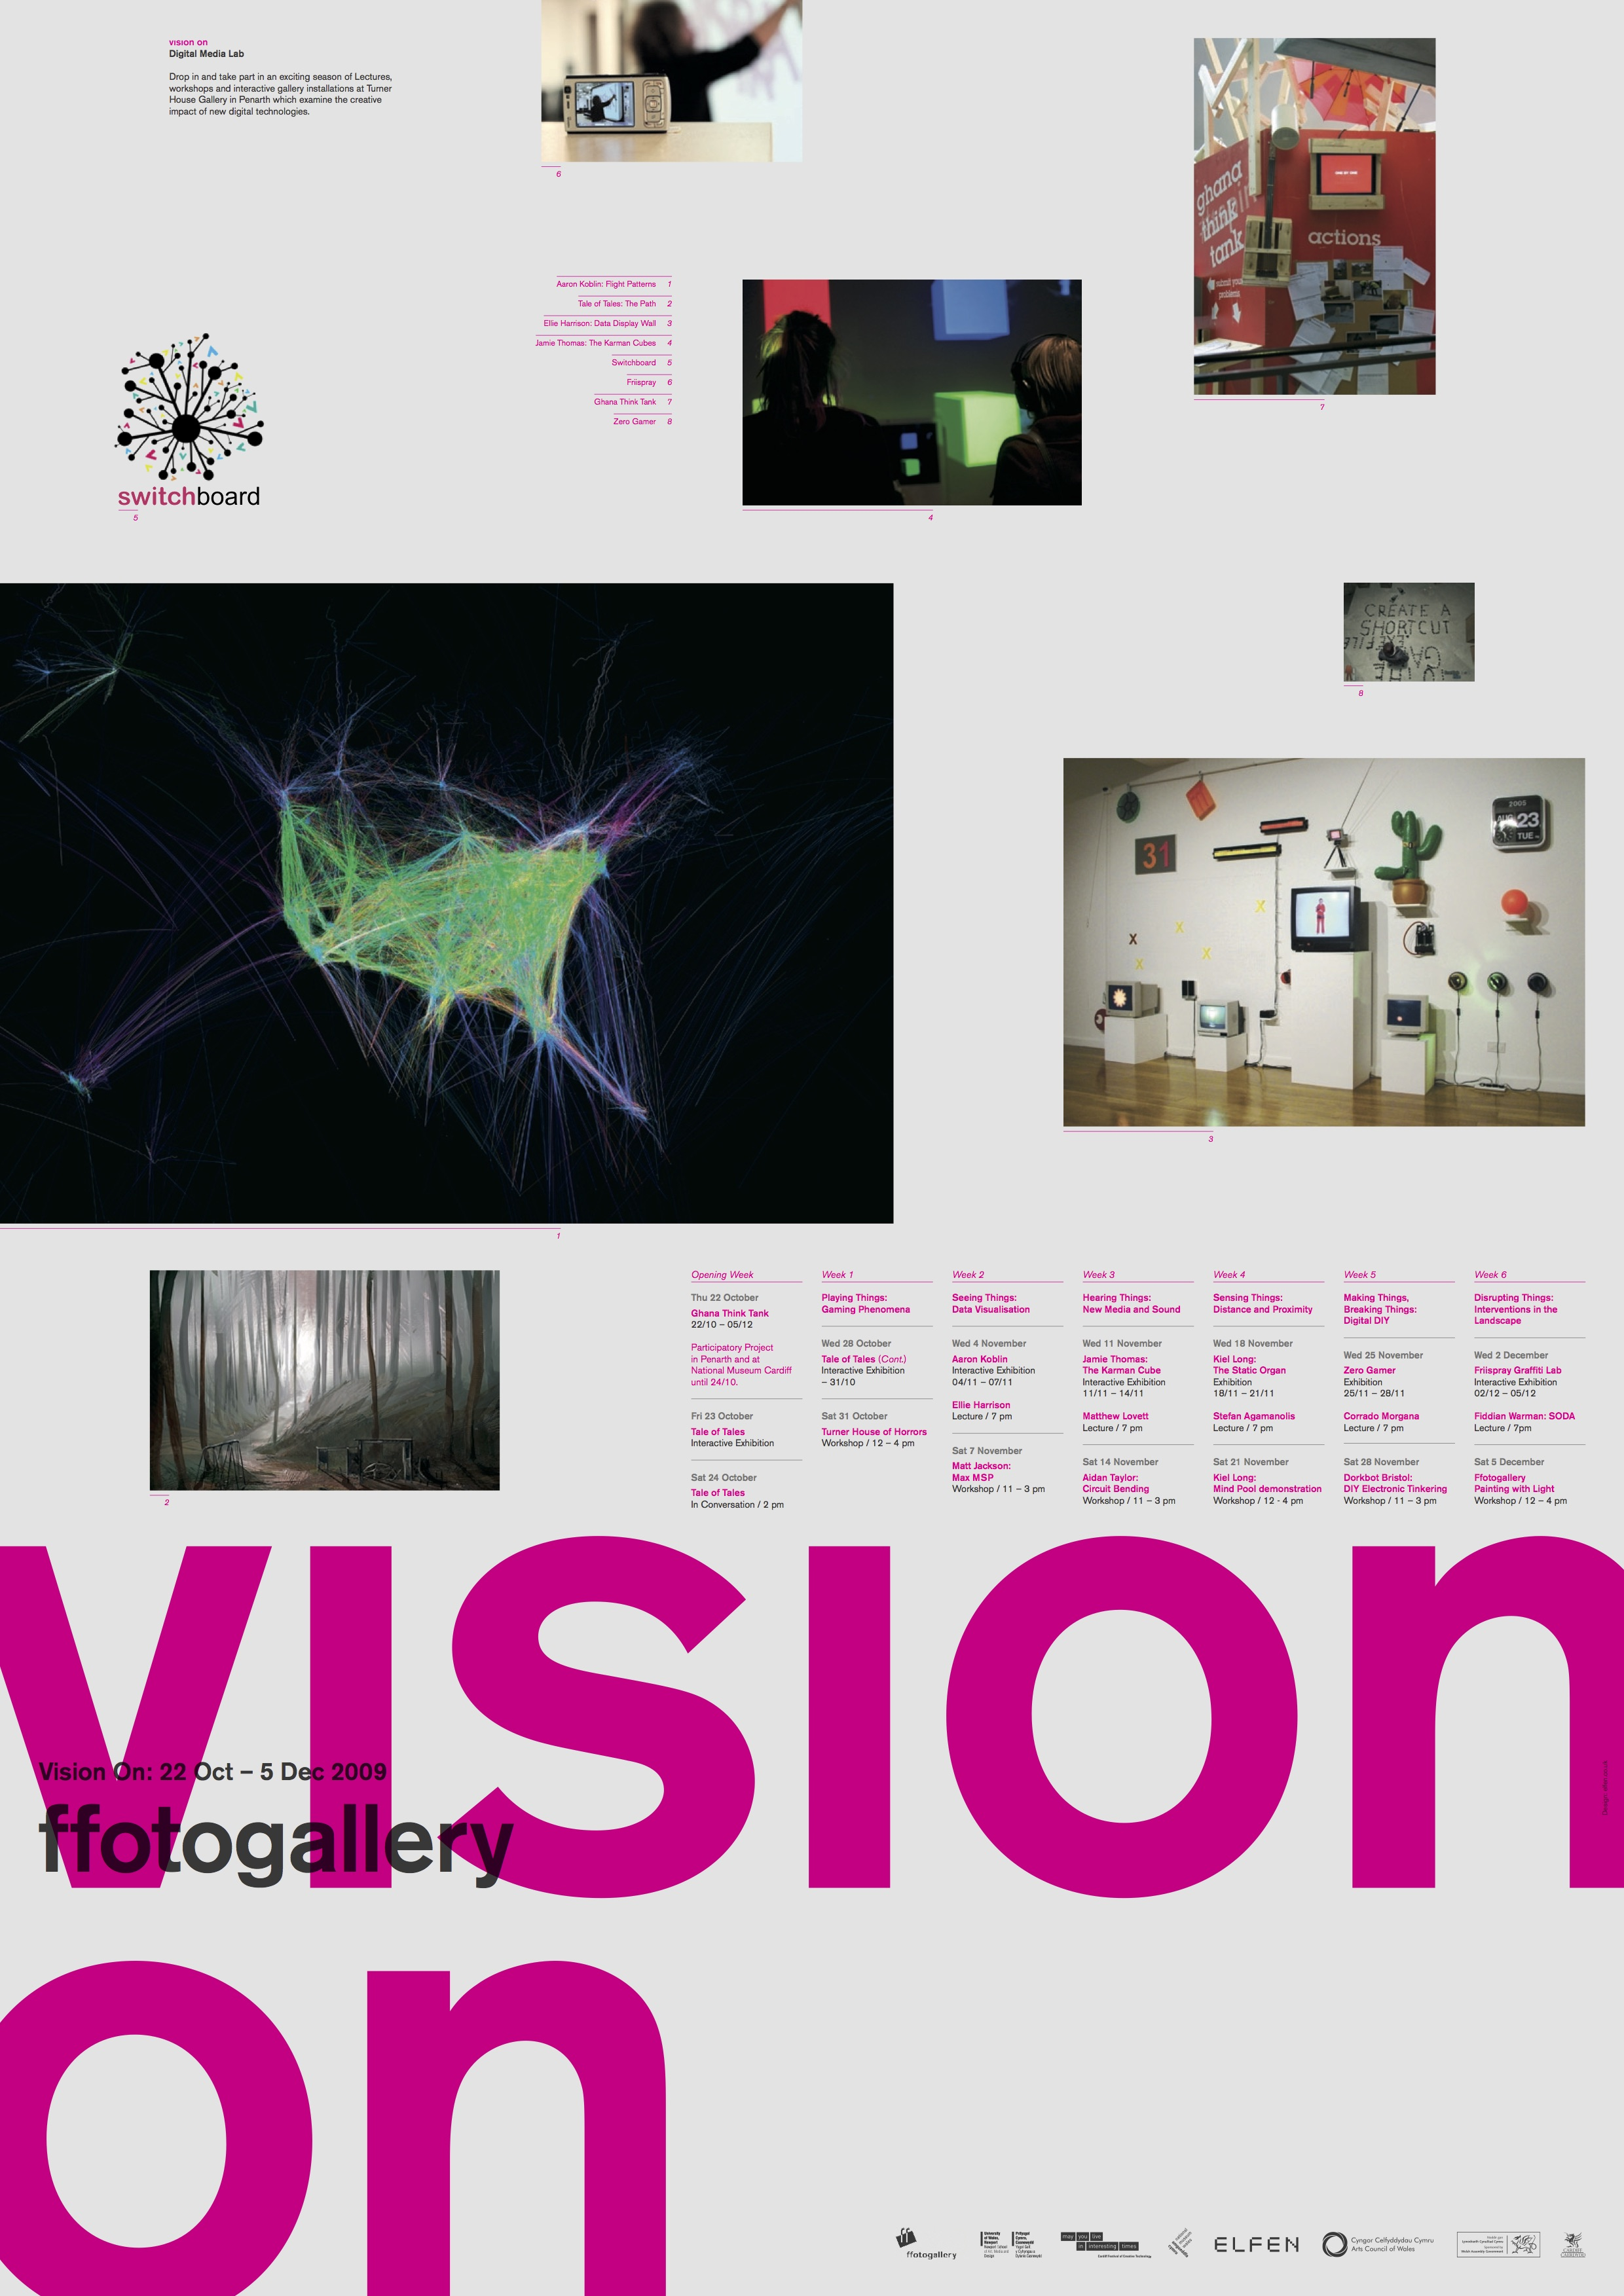 Ffotogallery Vision On English 1